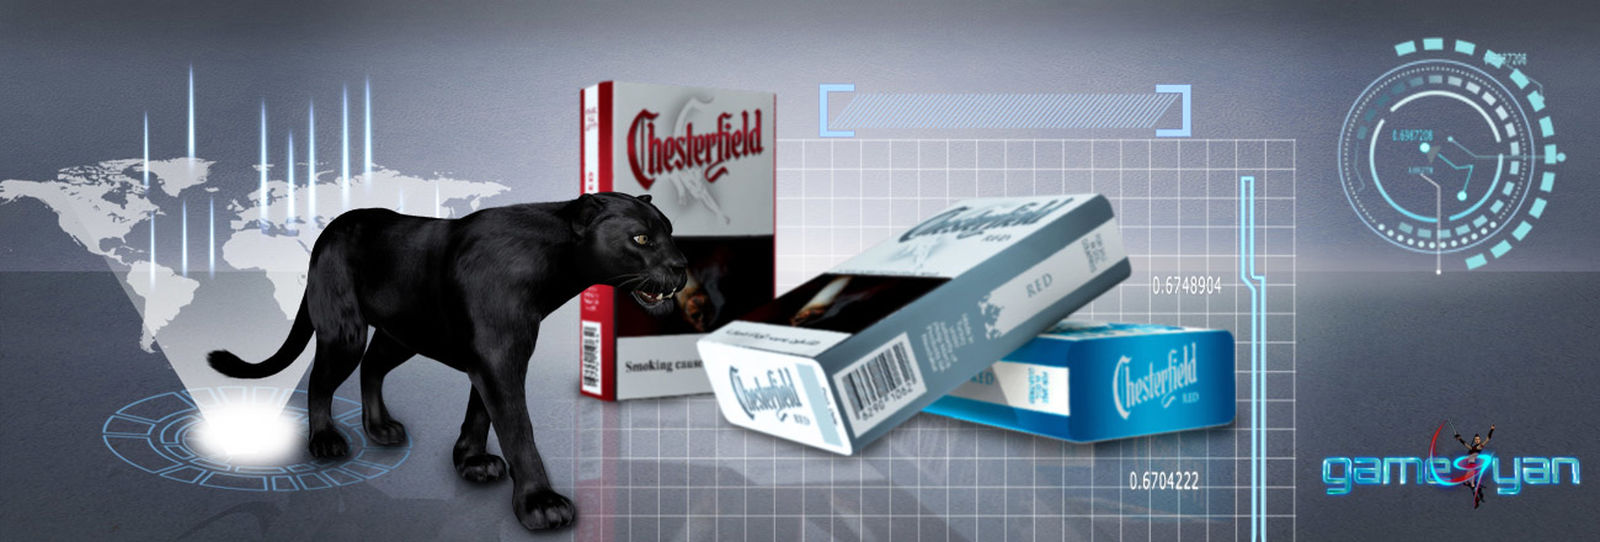 Chestifield Cigarette TV Commercial GameYan – a 3D Character Art and Game Development Studio in India design and deliver customized character based on clients from worldwide Project: Chestifield Ciggrate TV Commercial Client: You Experience Category: TV Commercial Animal Animation Animation Character Character Dsign Model Modeling Rigging Tv Commercial